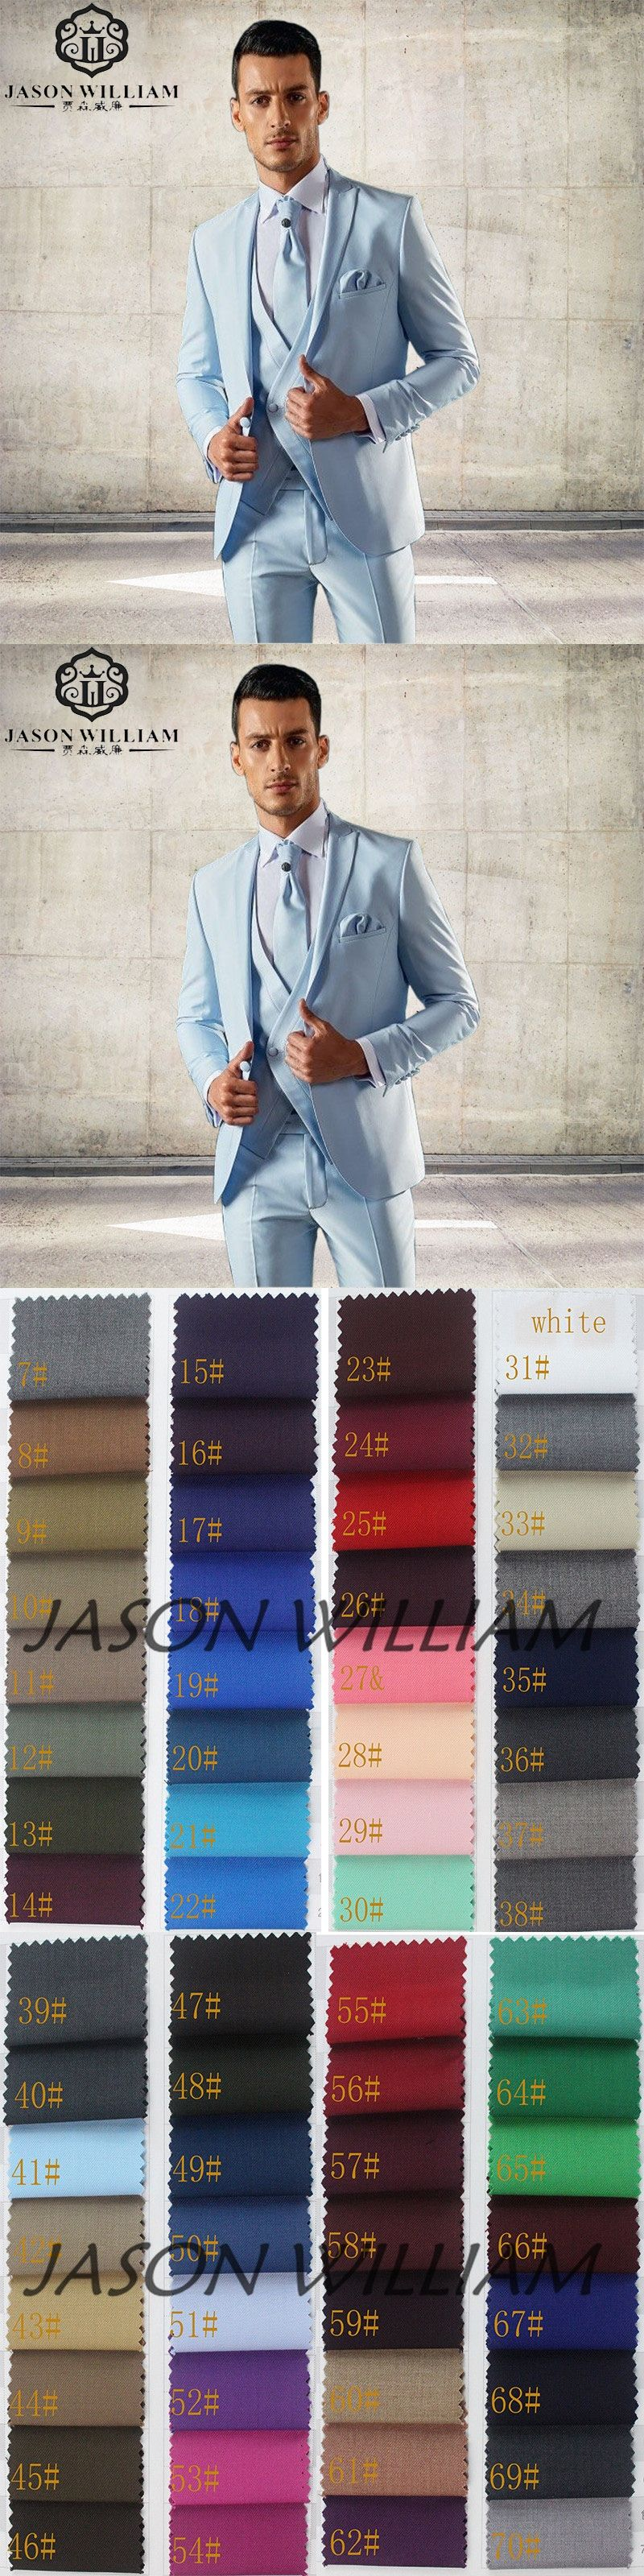 Ln light blue multistyle tailor made slim fit suits for men